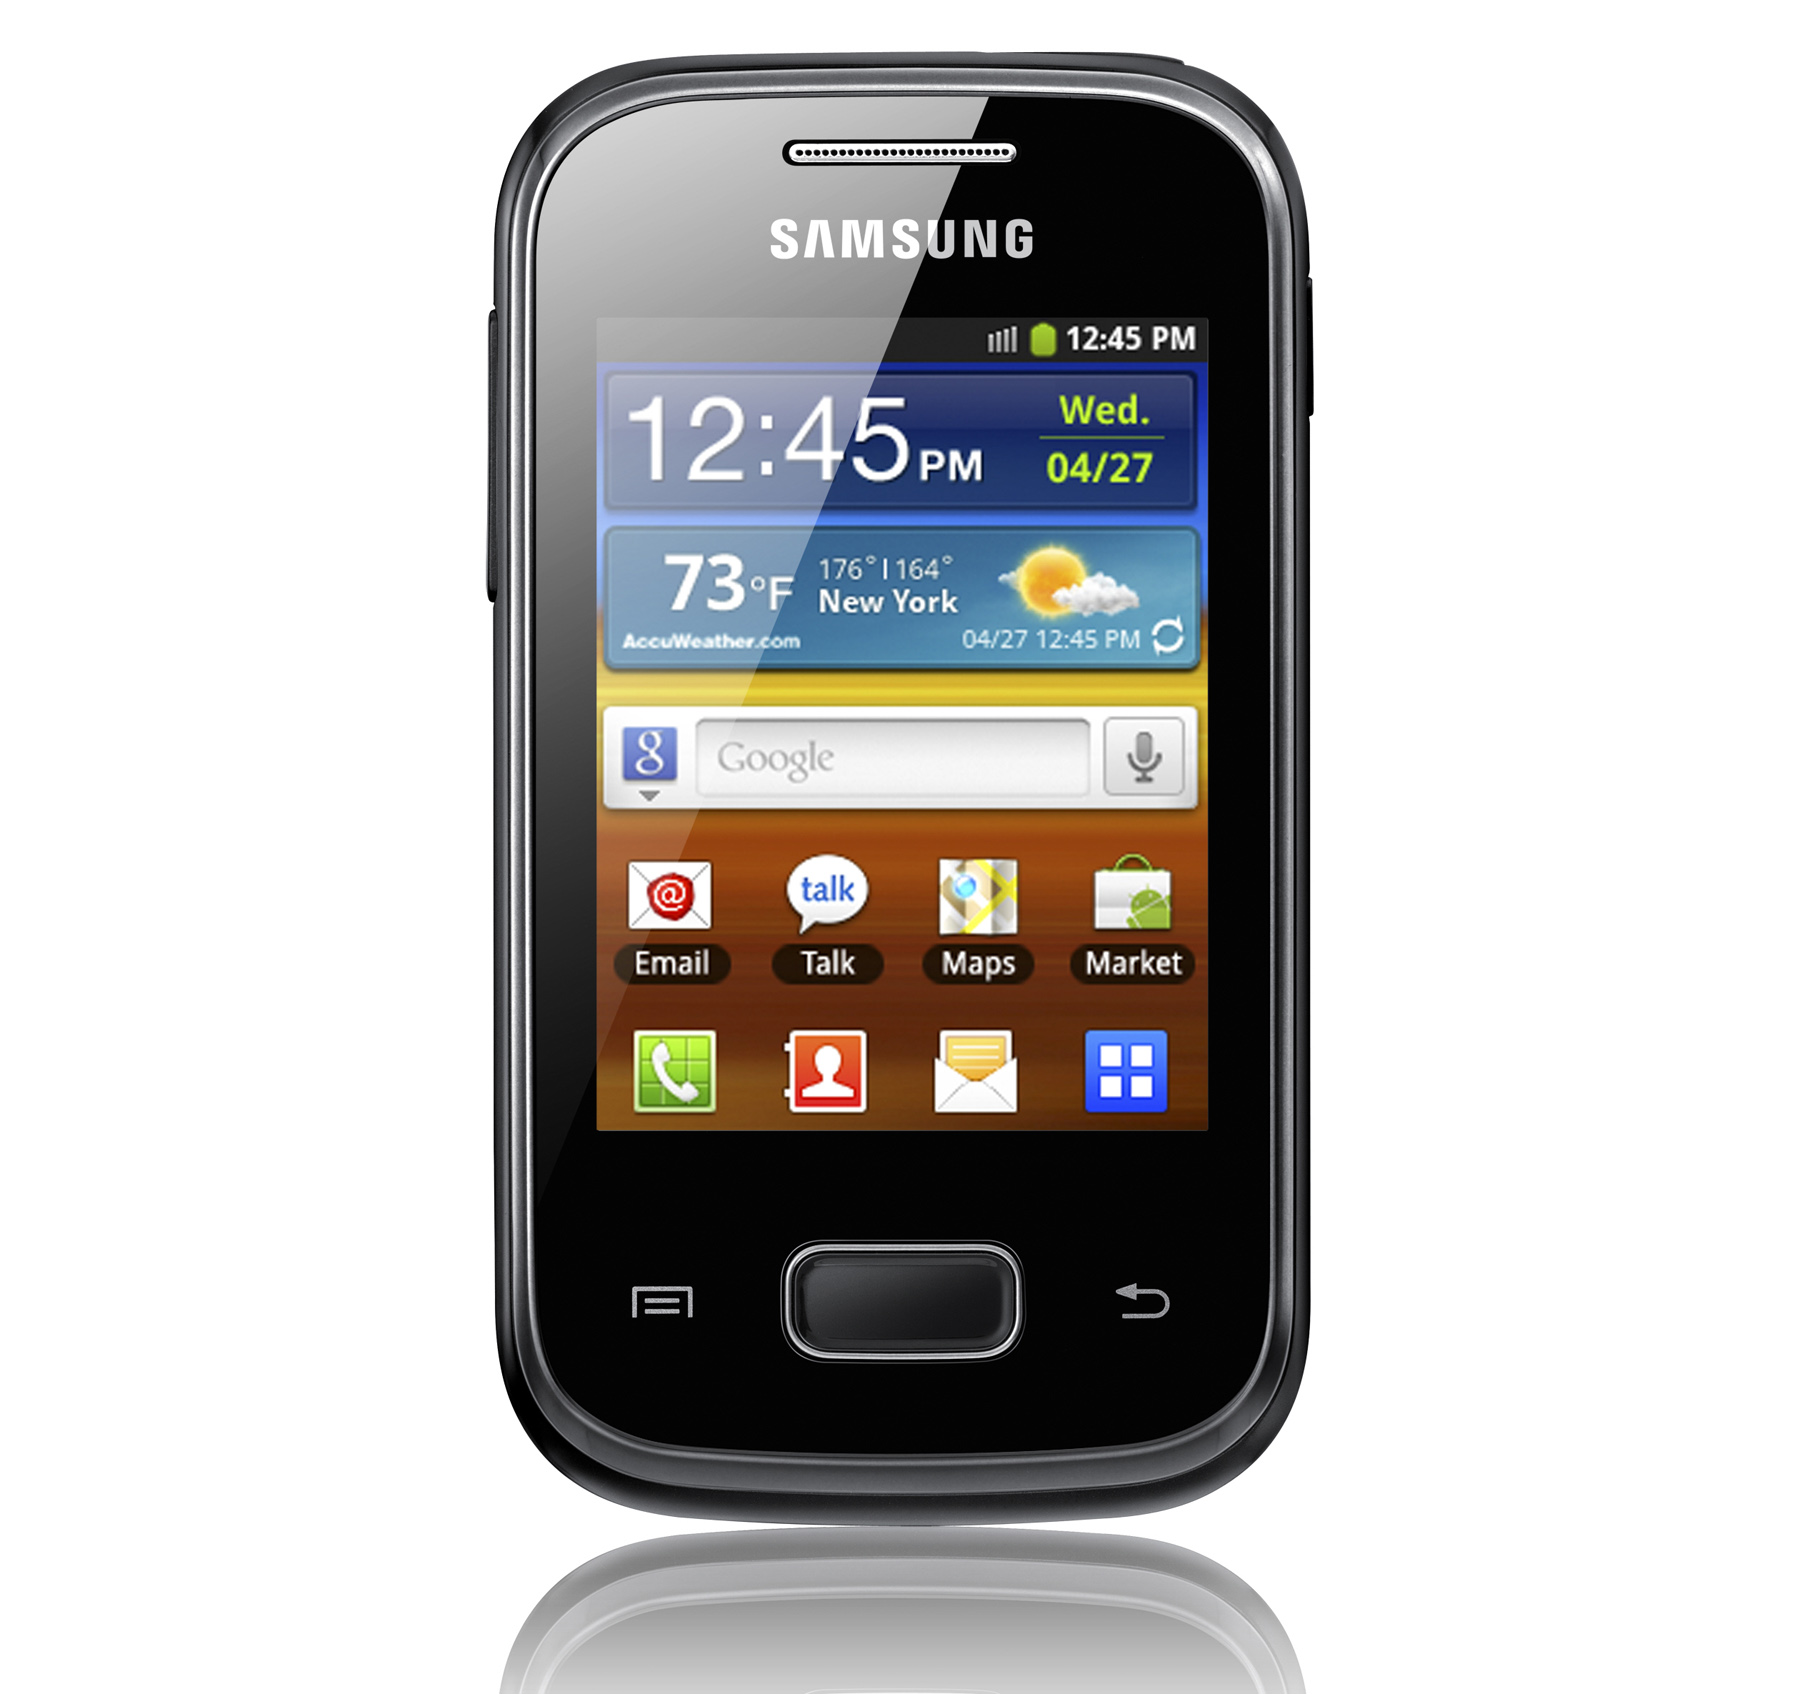 Samsung Galaxy Pocket – Android 2.3 on a 2.8″ display